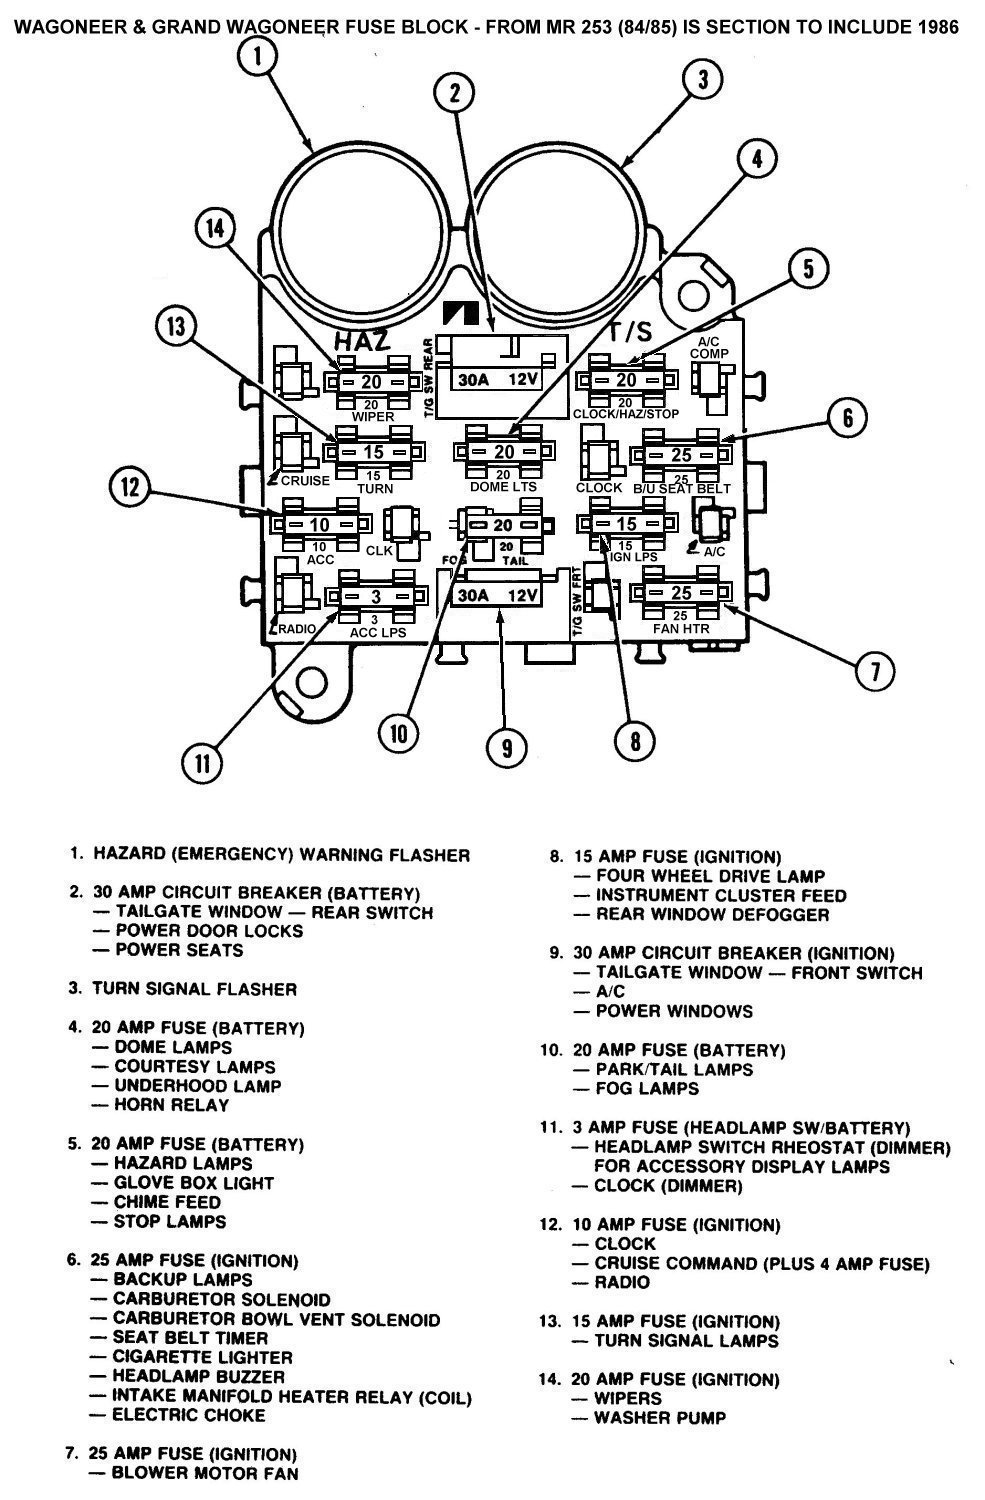 84 86_FuseBlock tom 'oljeep' collins fsj wiring page 1989 grand wagoneer fuse box at panicattacktreatment.co